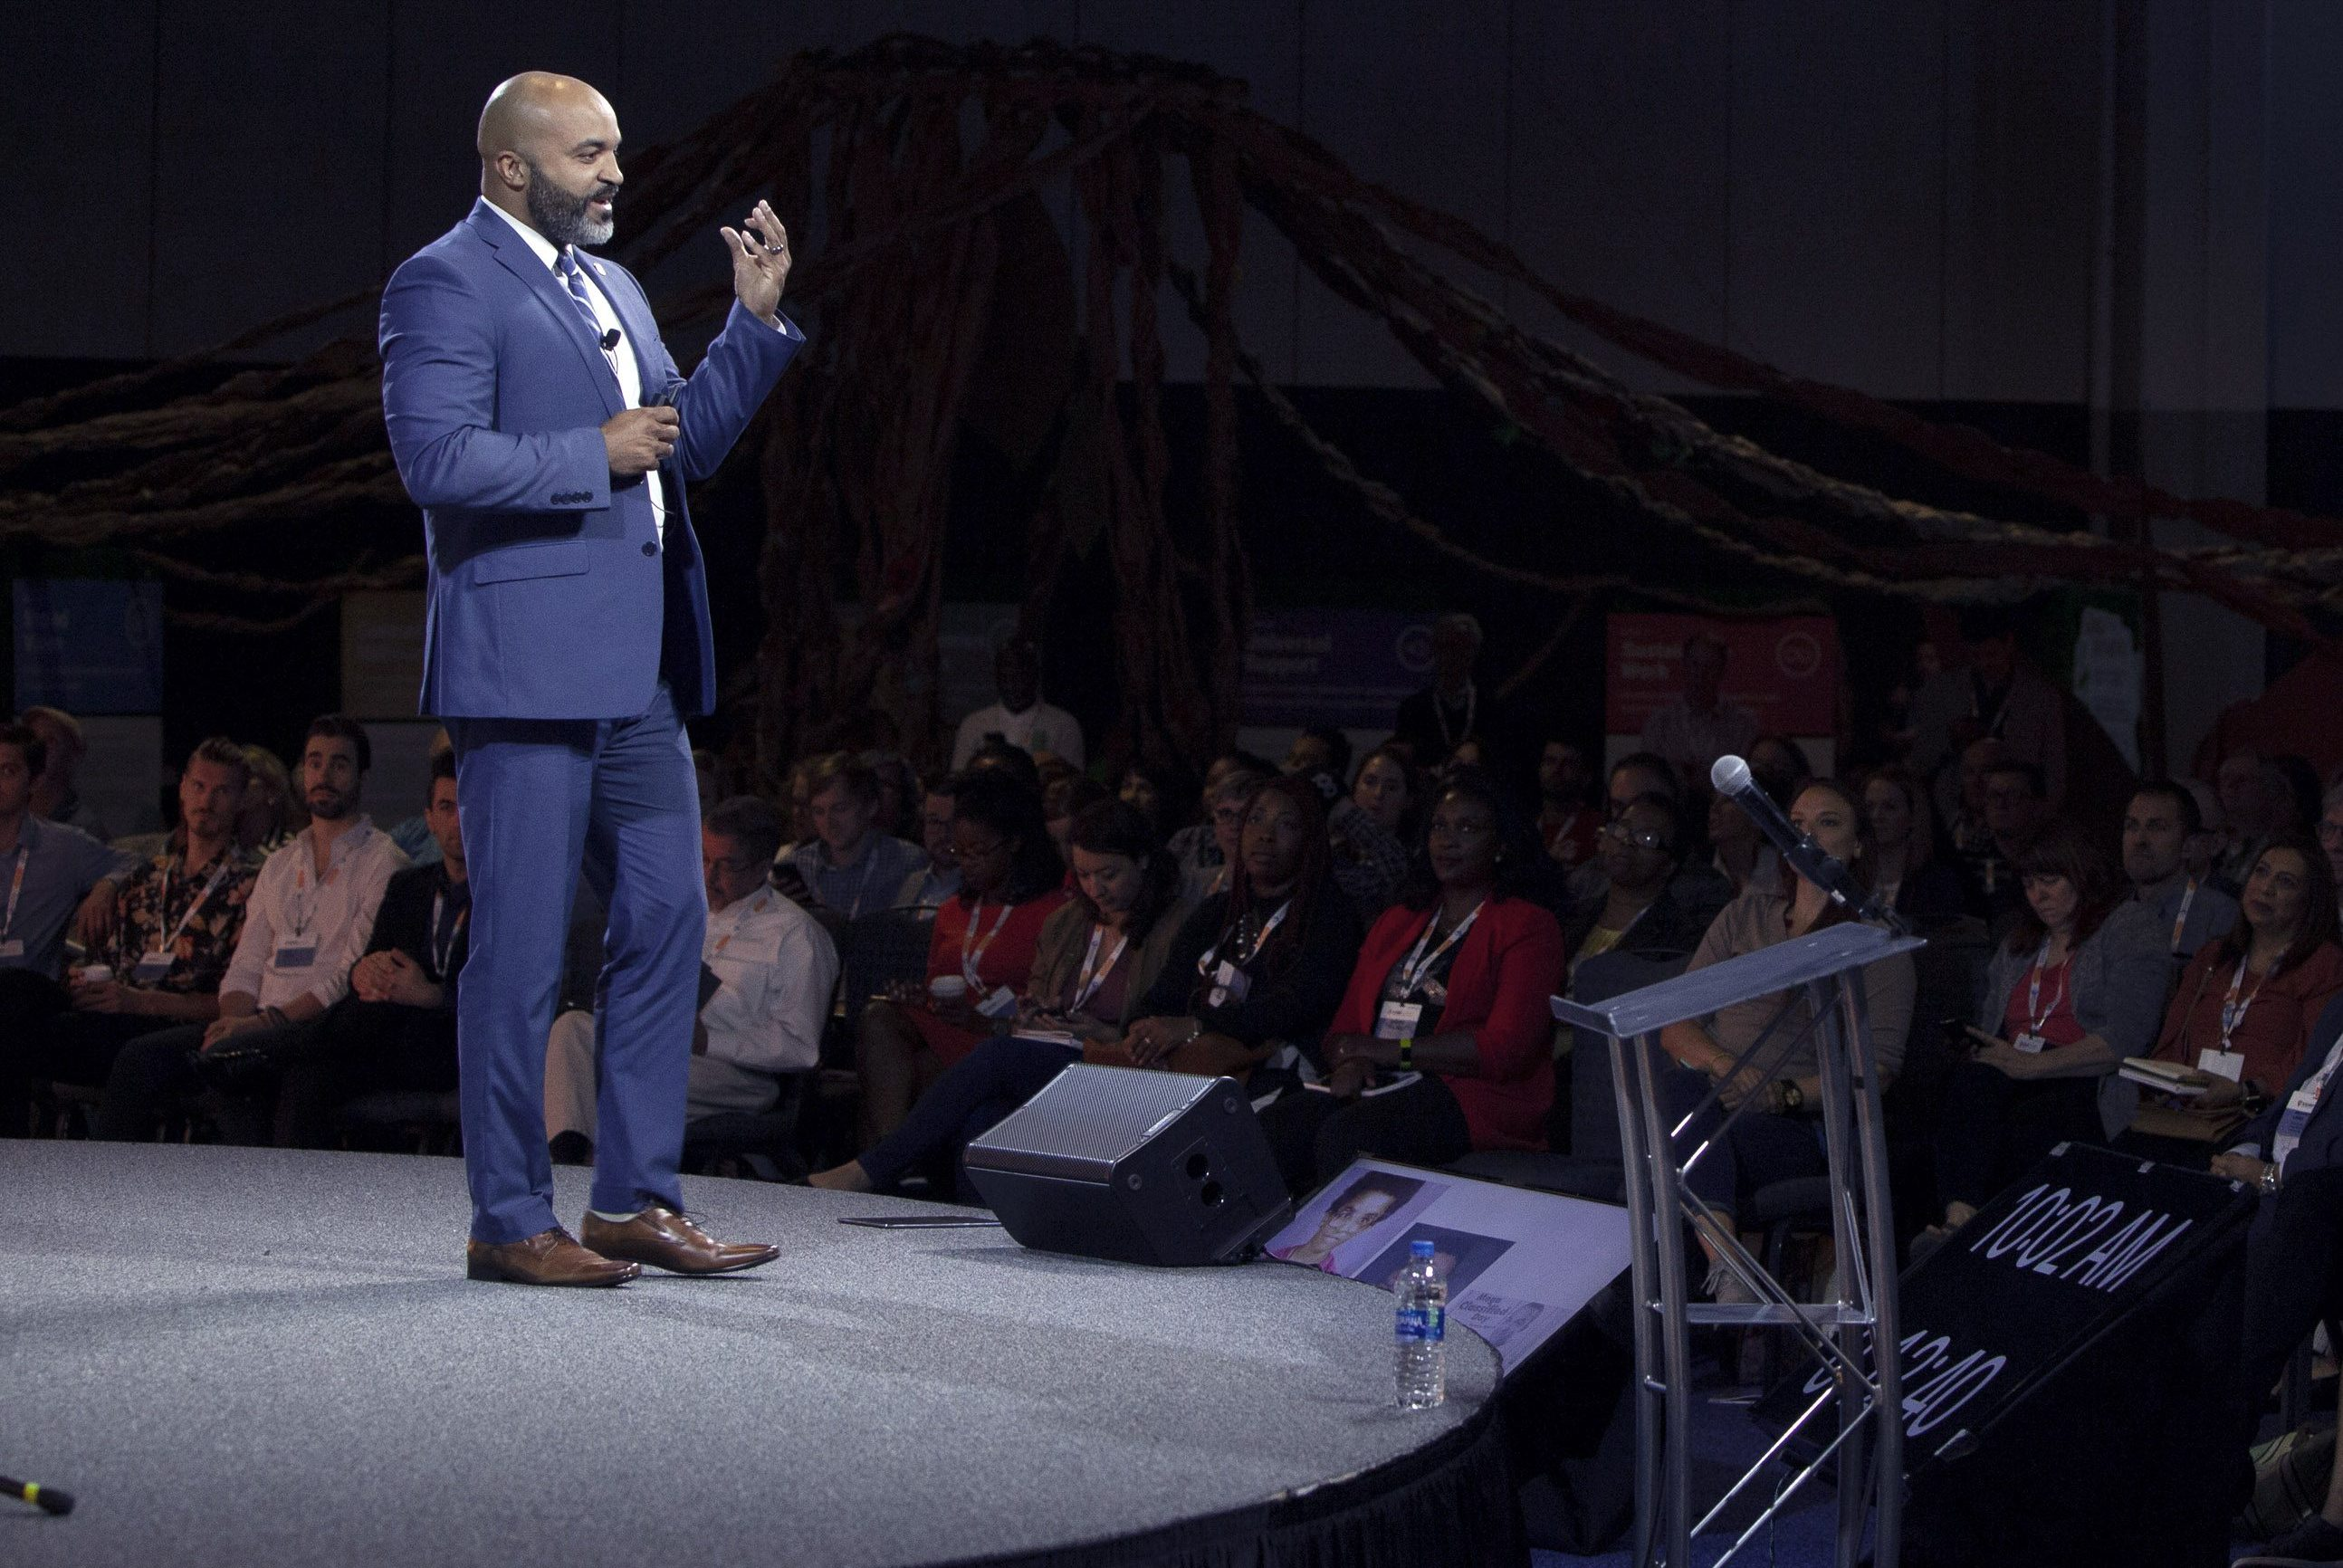 Dell Gines speaks at EShip summit 2019